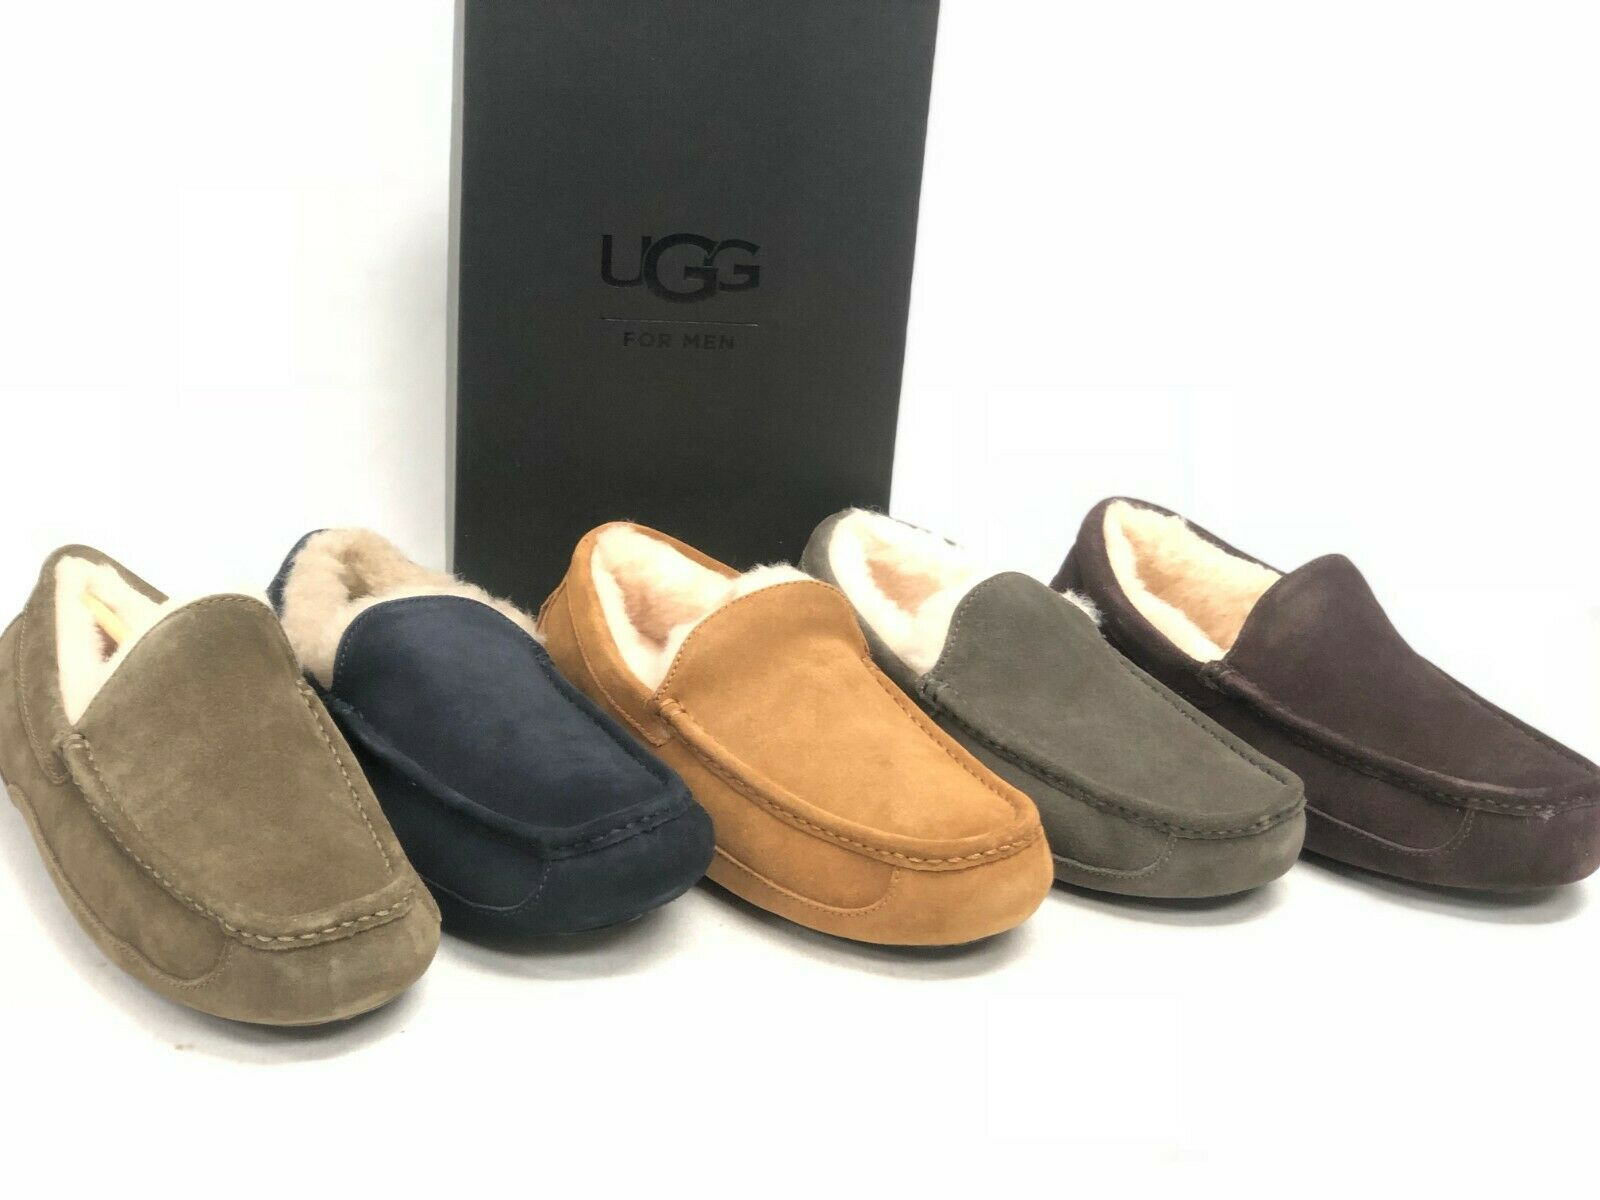 UGG Australia Men's Ascot Slippers 1101110 Shoes Sheepskin S